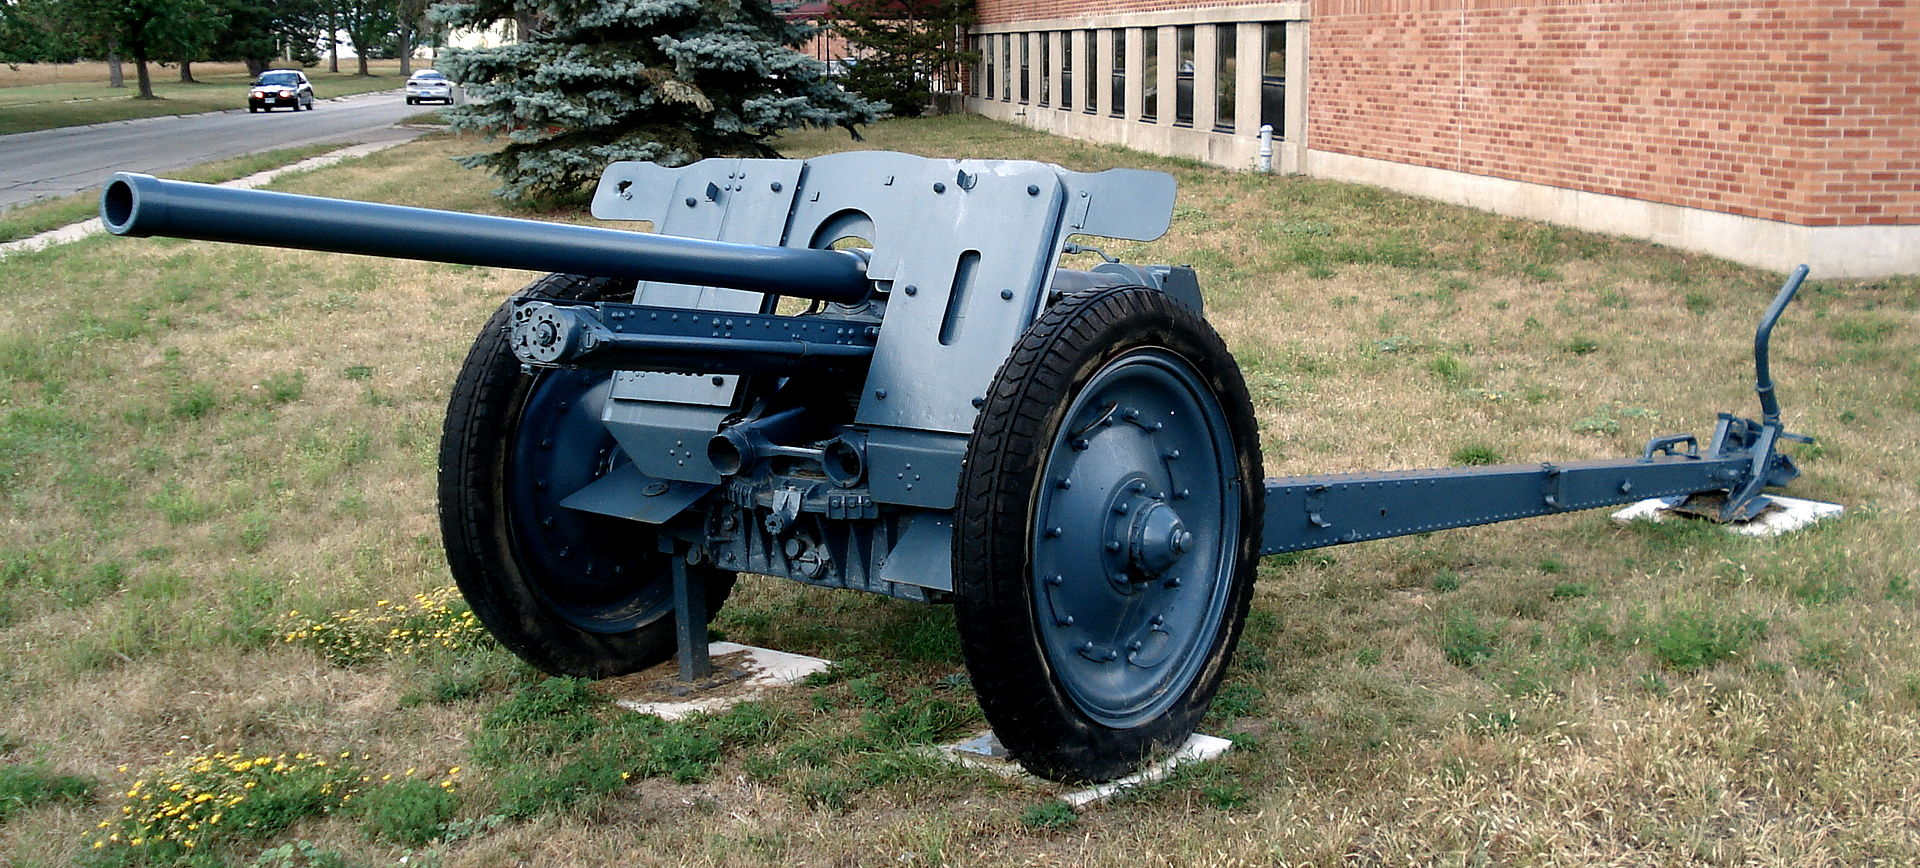 photo of 7.62cm Pak 36(r) L/51 from By Balcer~commonswiki - Own work, CC BY 2.5, https://commons.wikimedia.org